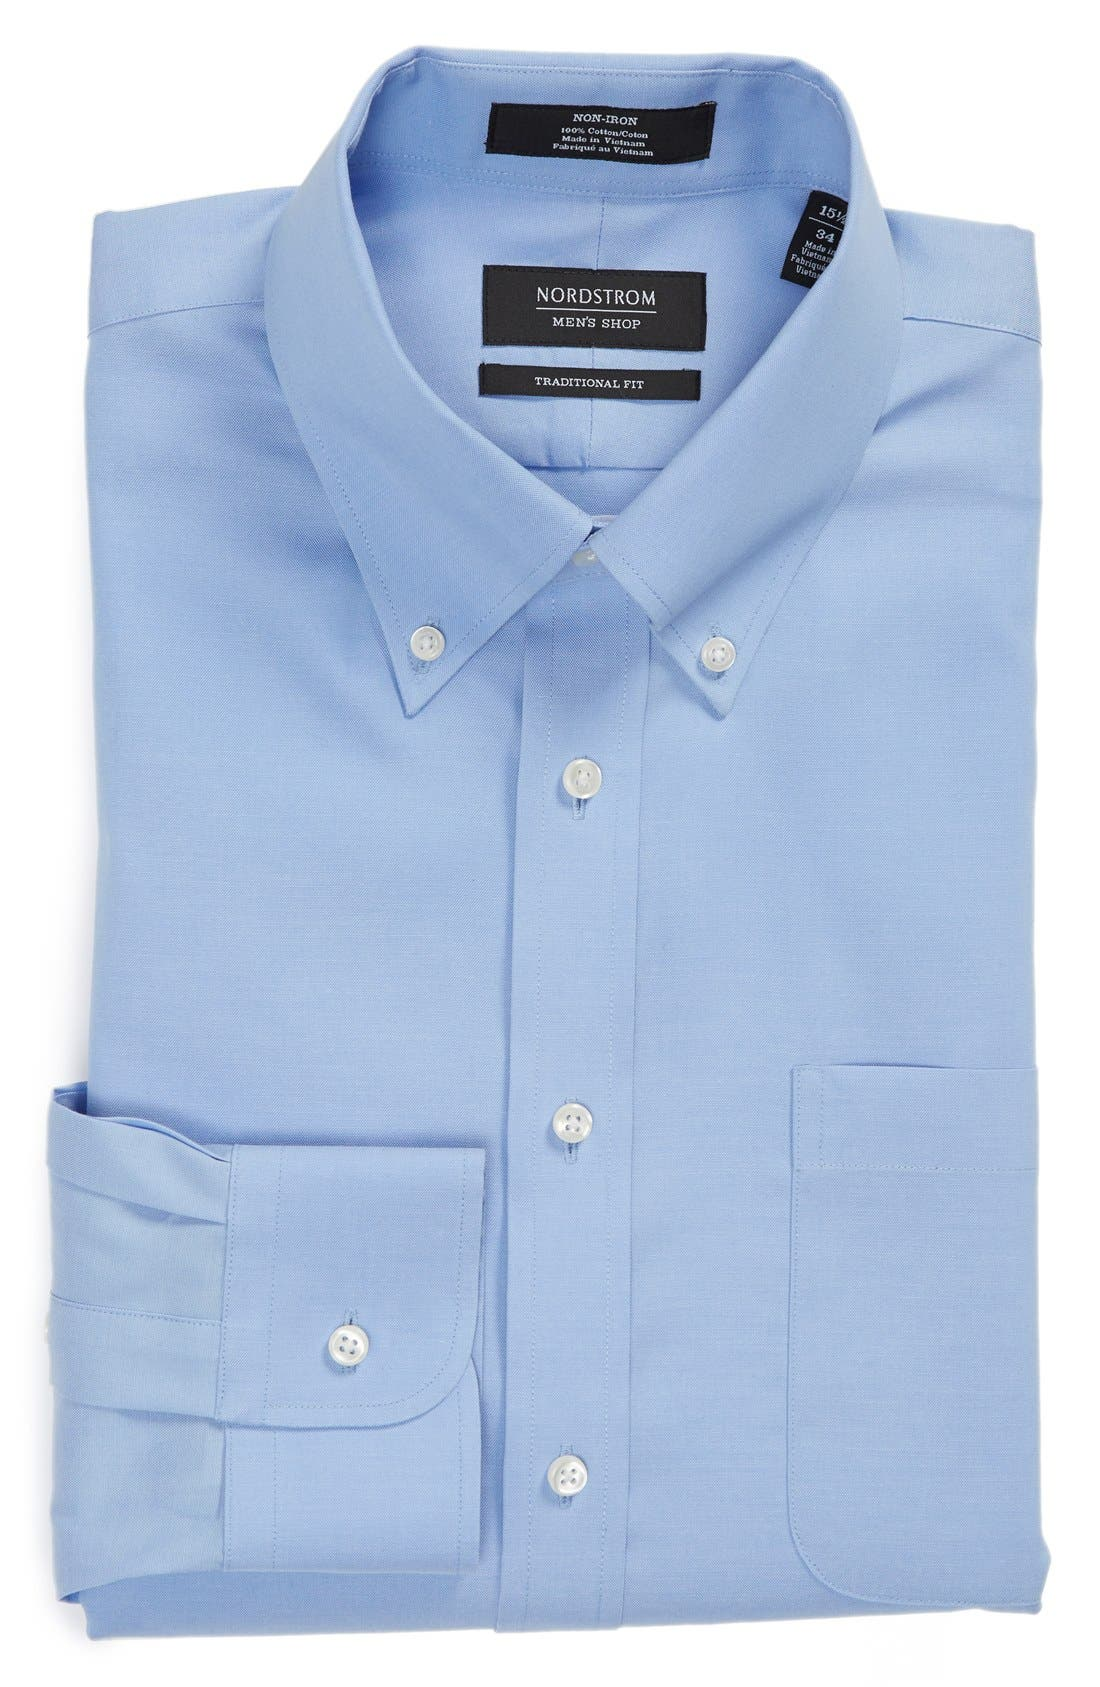 Alternate Image 1 Selected - Nordstrom Men's Shop Traditional Fit Non-Iron Solid Dress Shirt